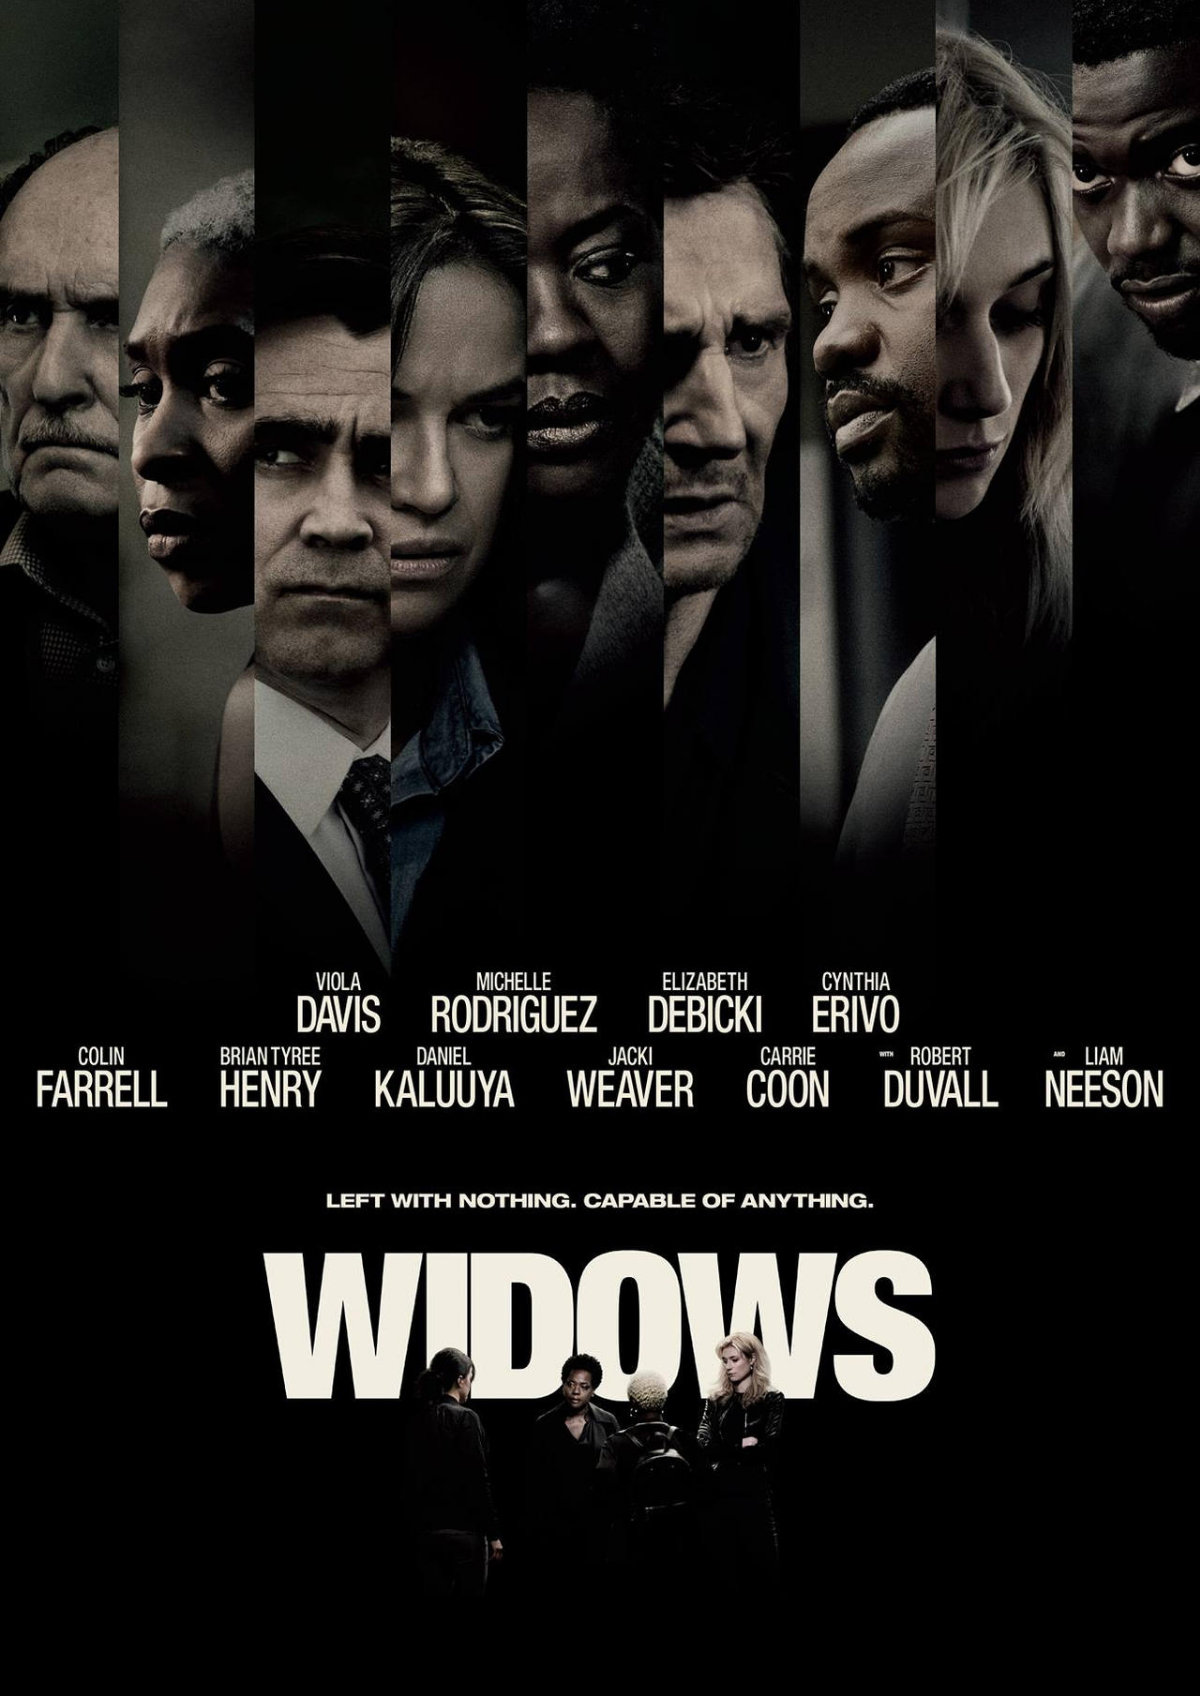 'Widows' movie poster